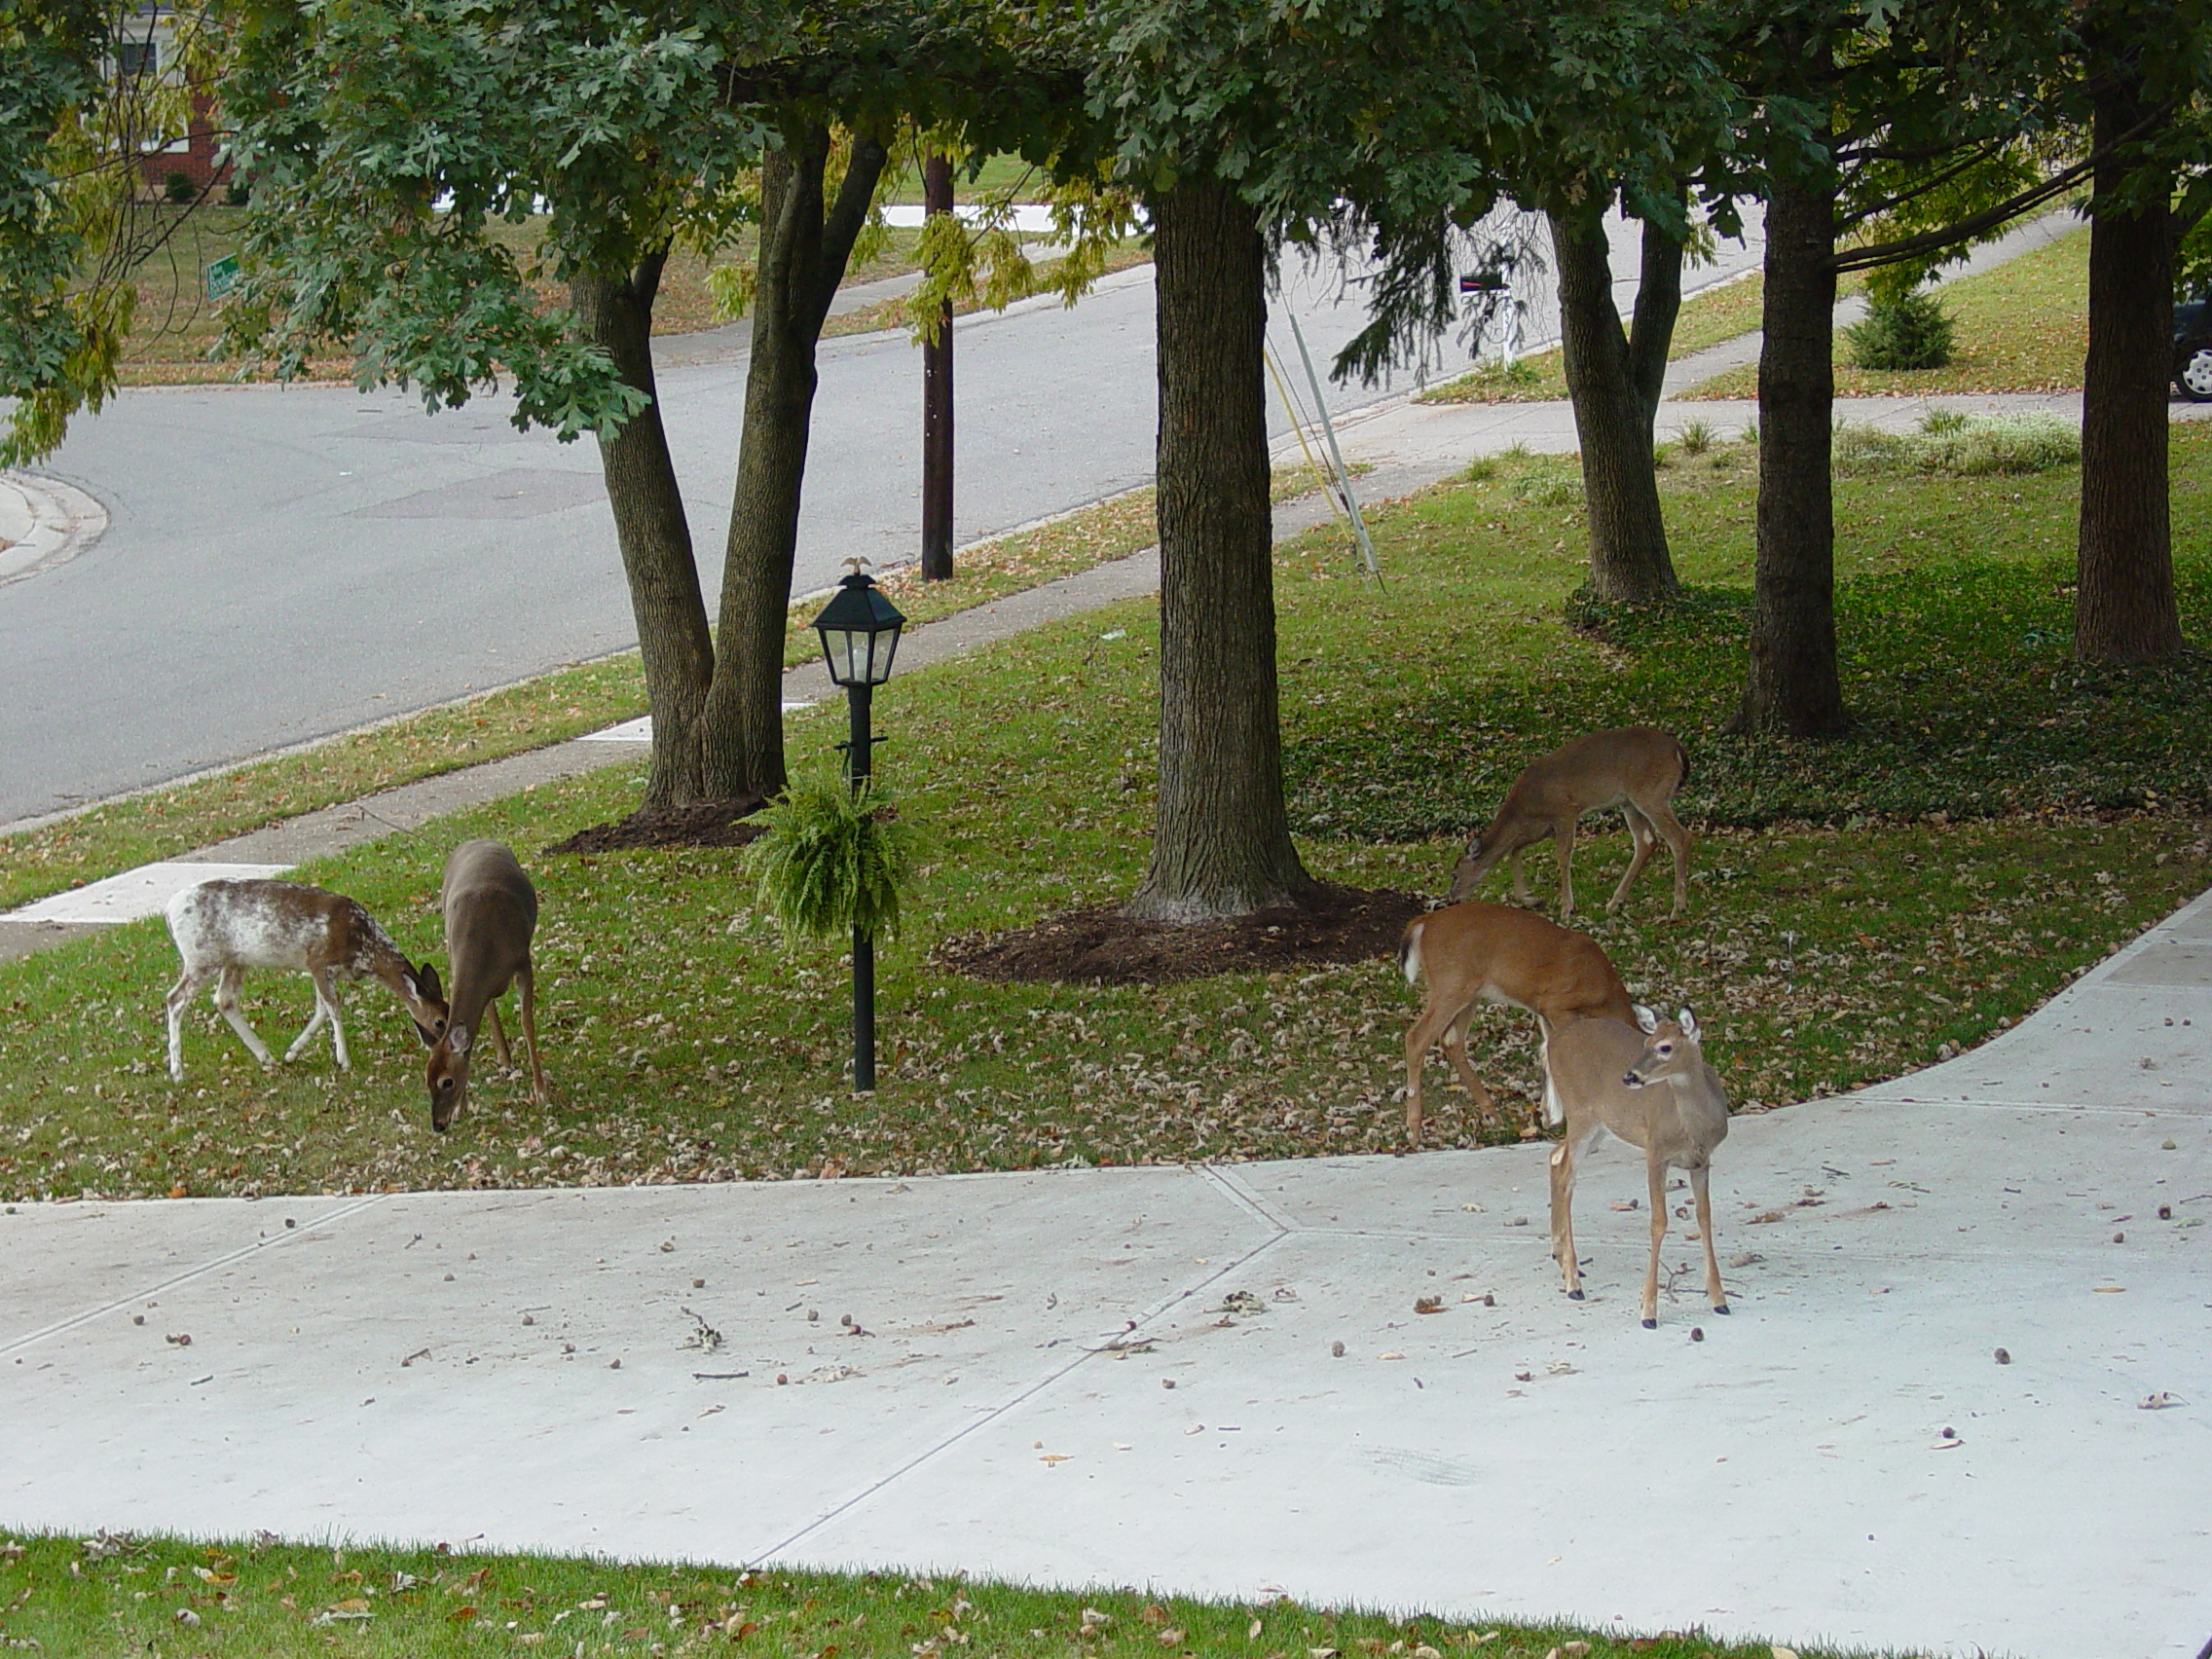 White-tailed deer - note the piebald deer on the far left side.